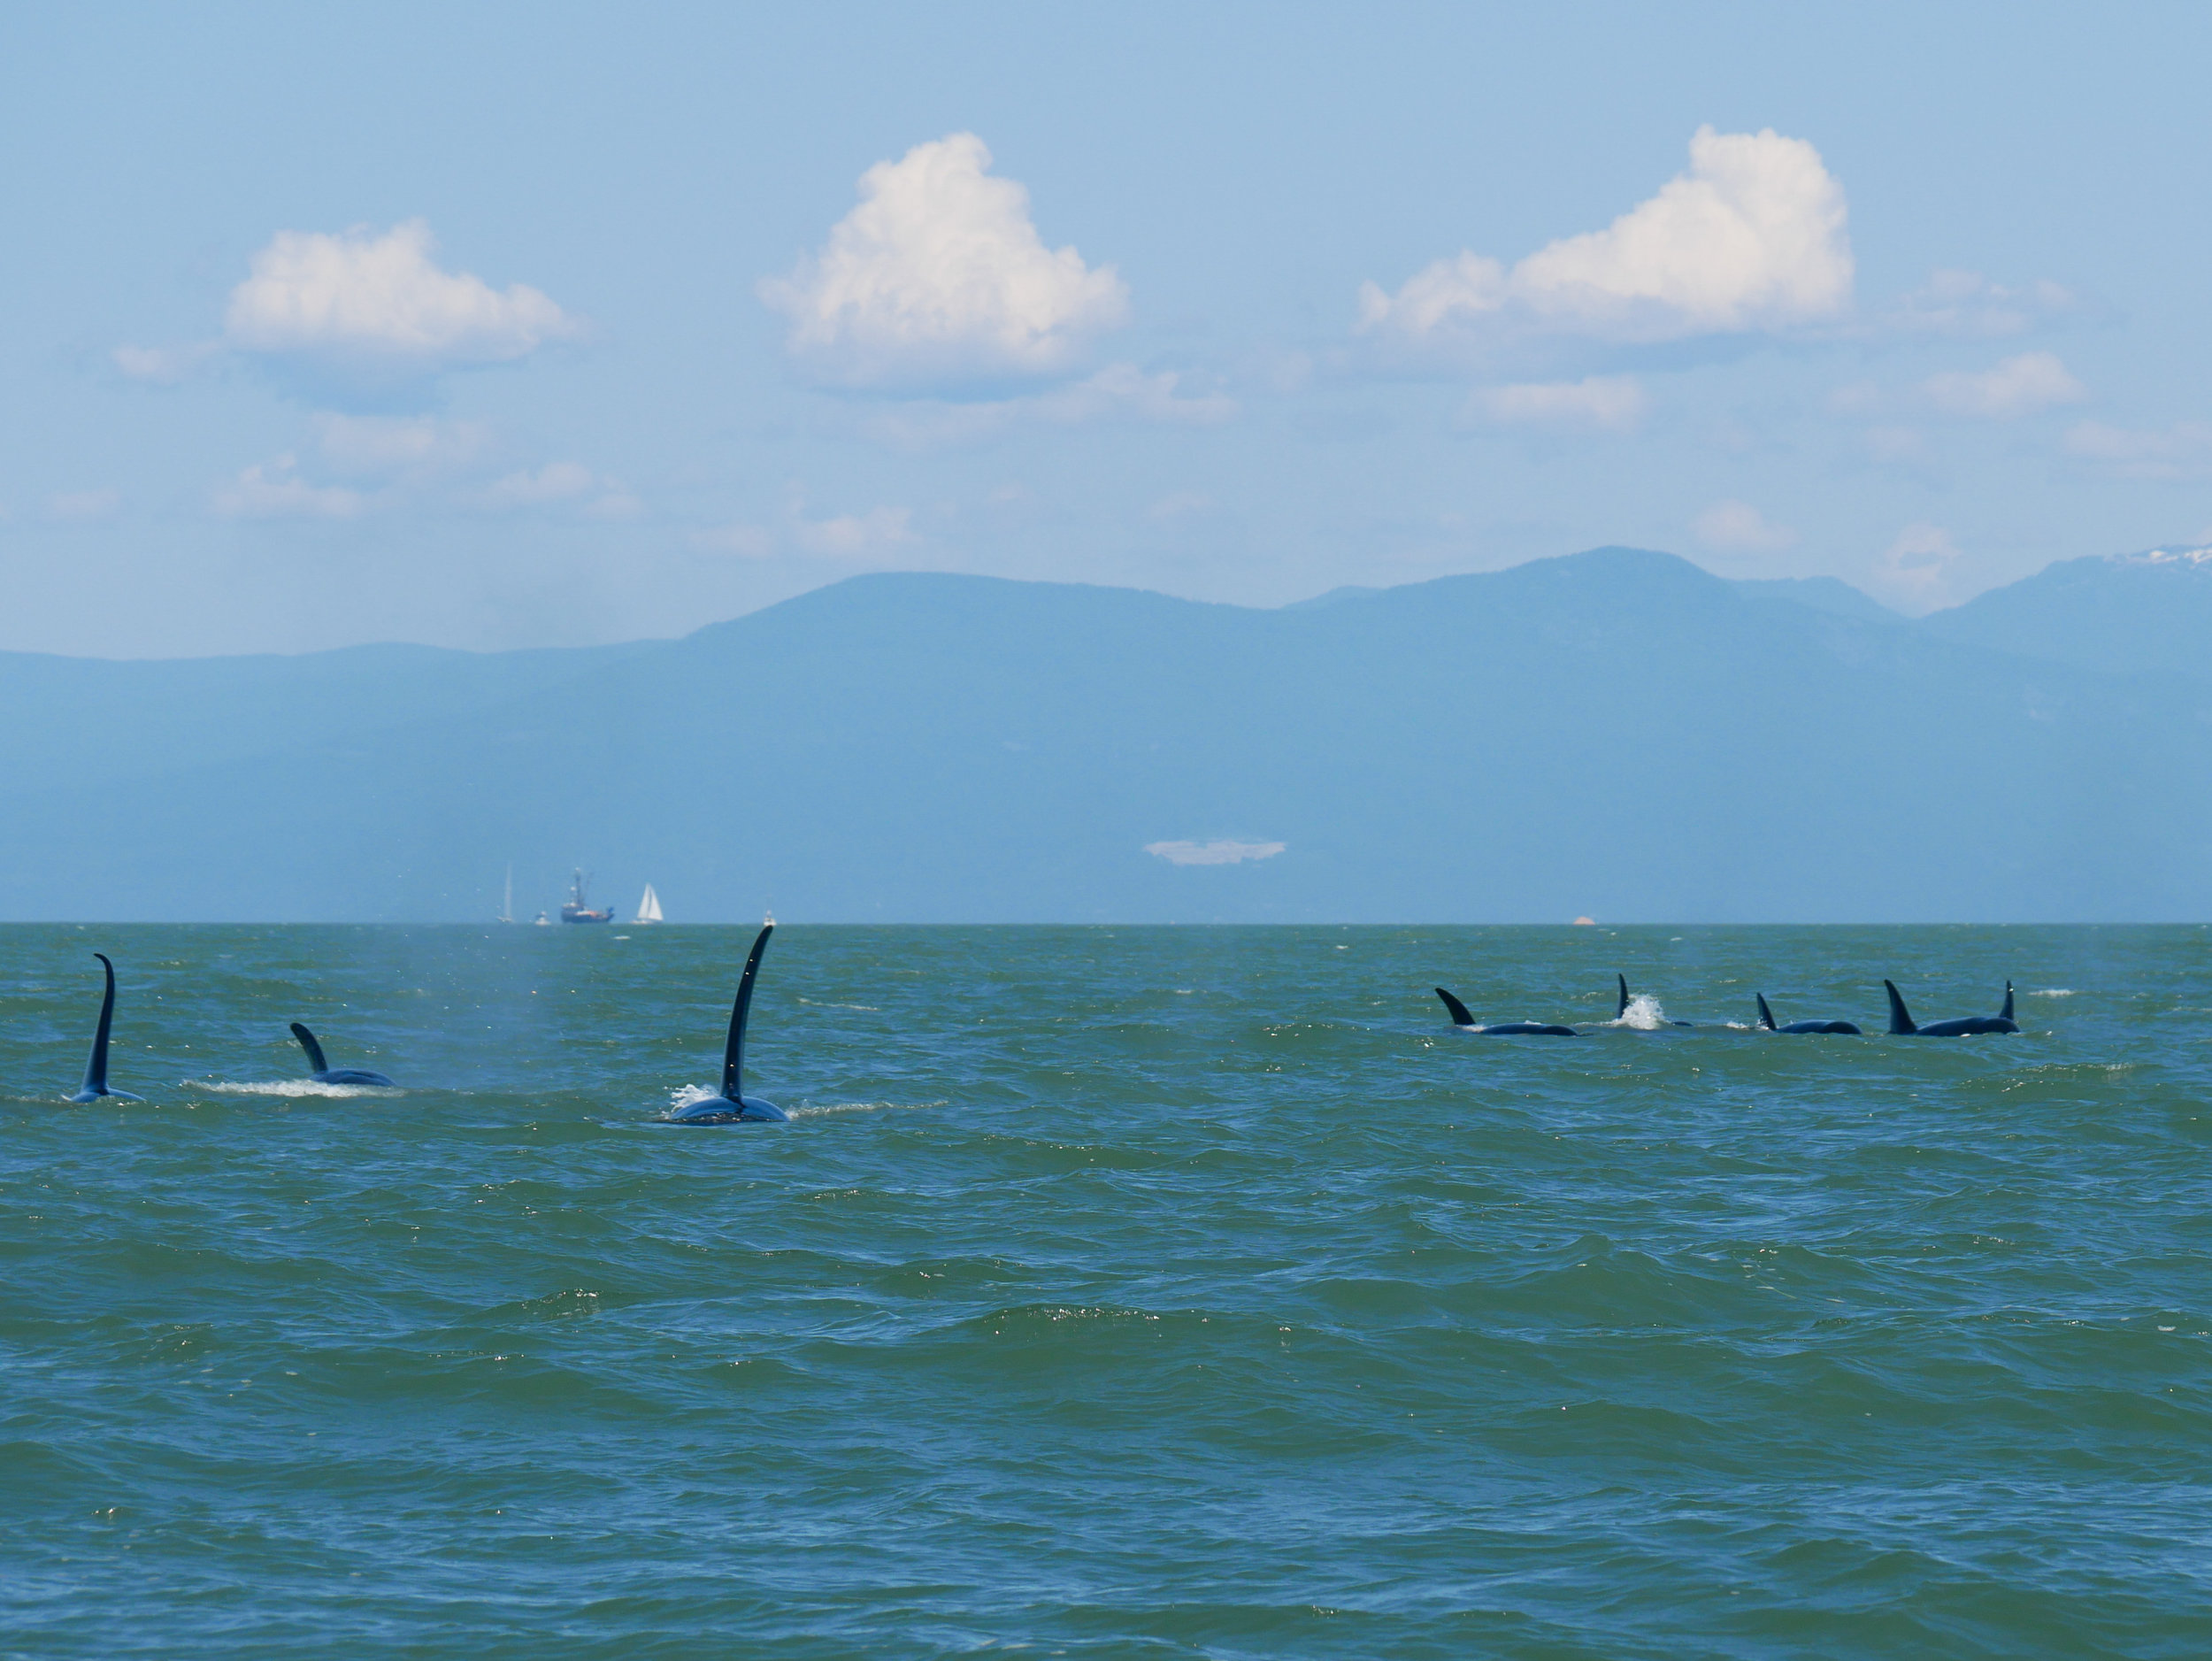 Whale soup! So many orcas surfacing at the same time. Notice the large males on the left side with the tall dorsal fins. Photo by Alanna Vivani.